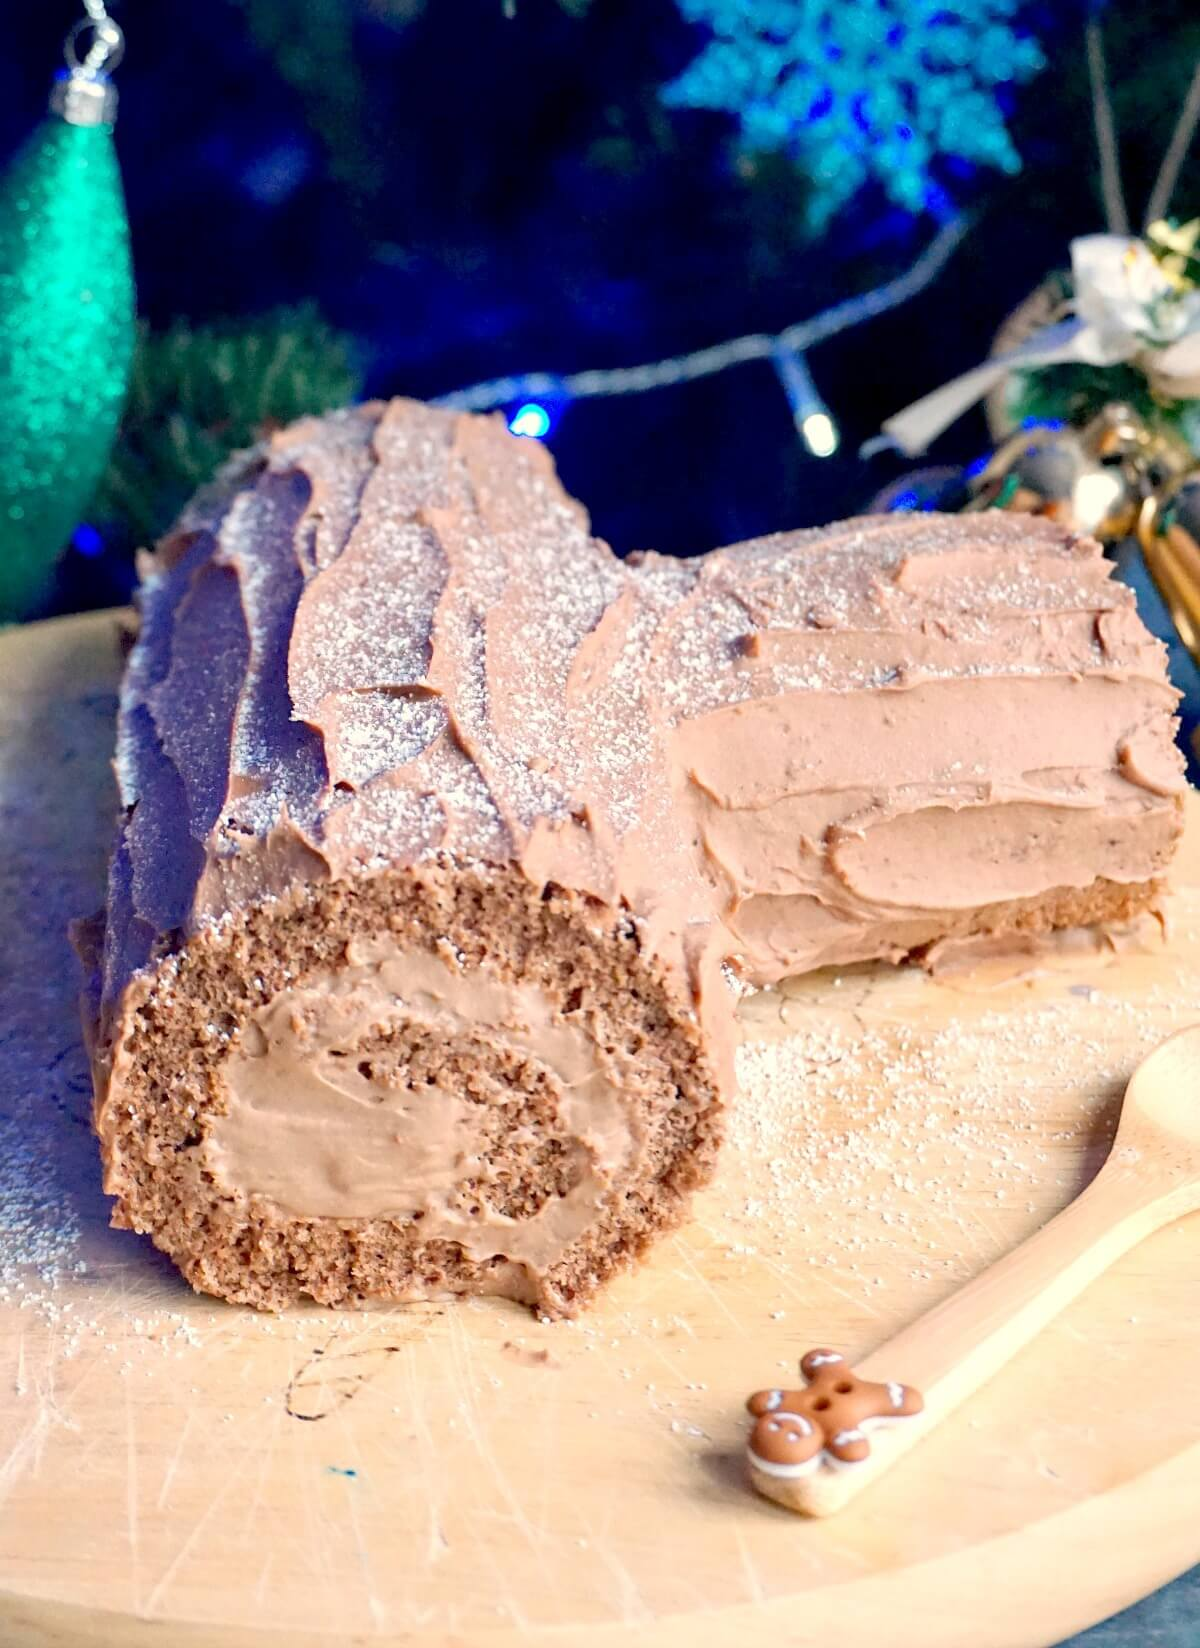 A chocolate yule log on a wooden board